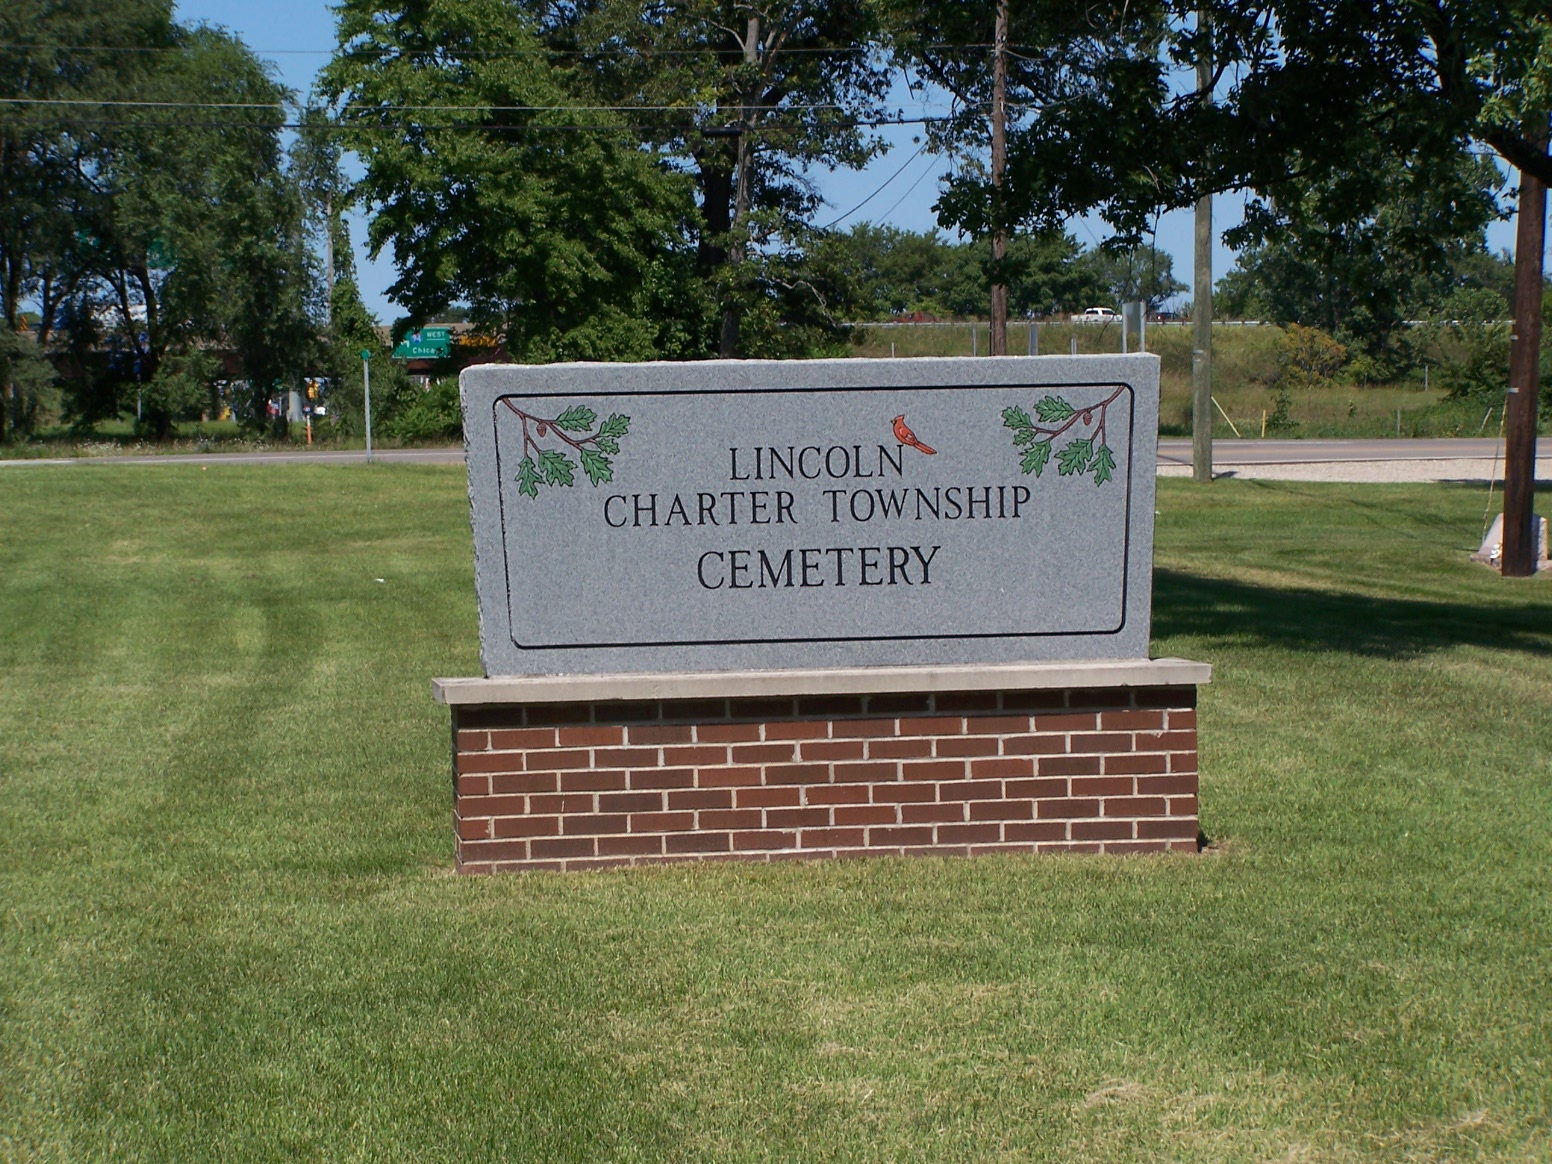 Lincoln Charter Township Cemetery